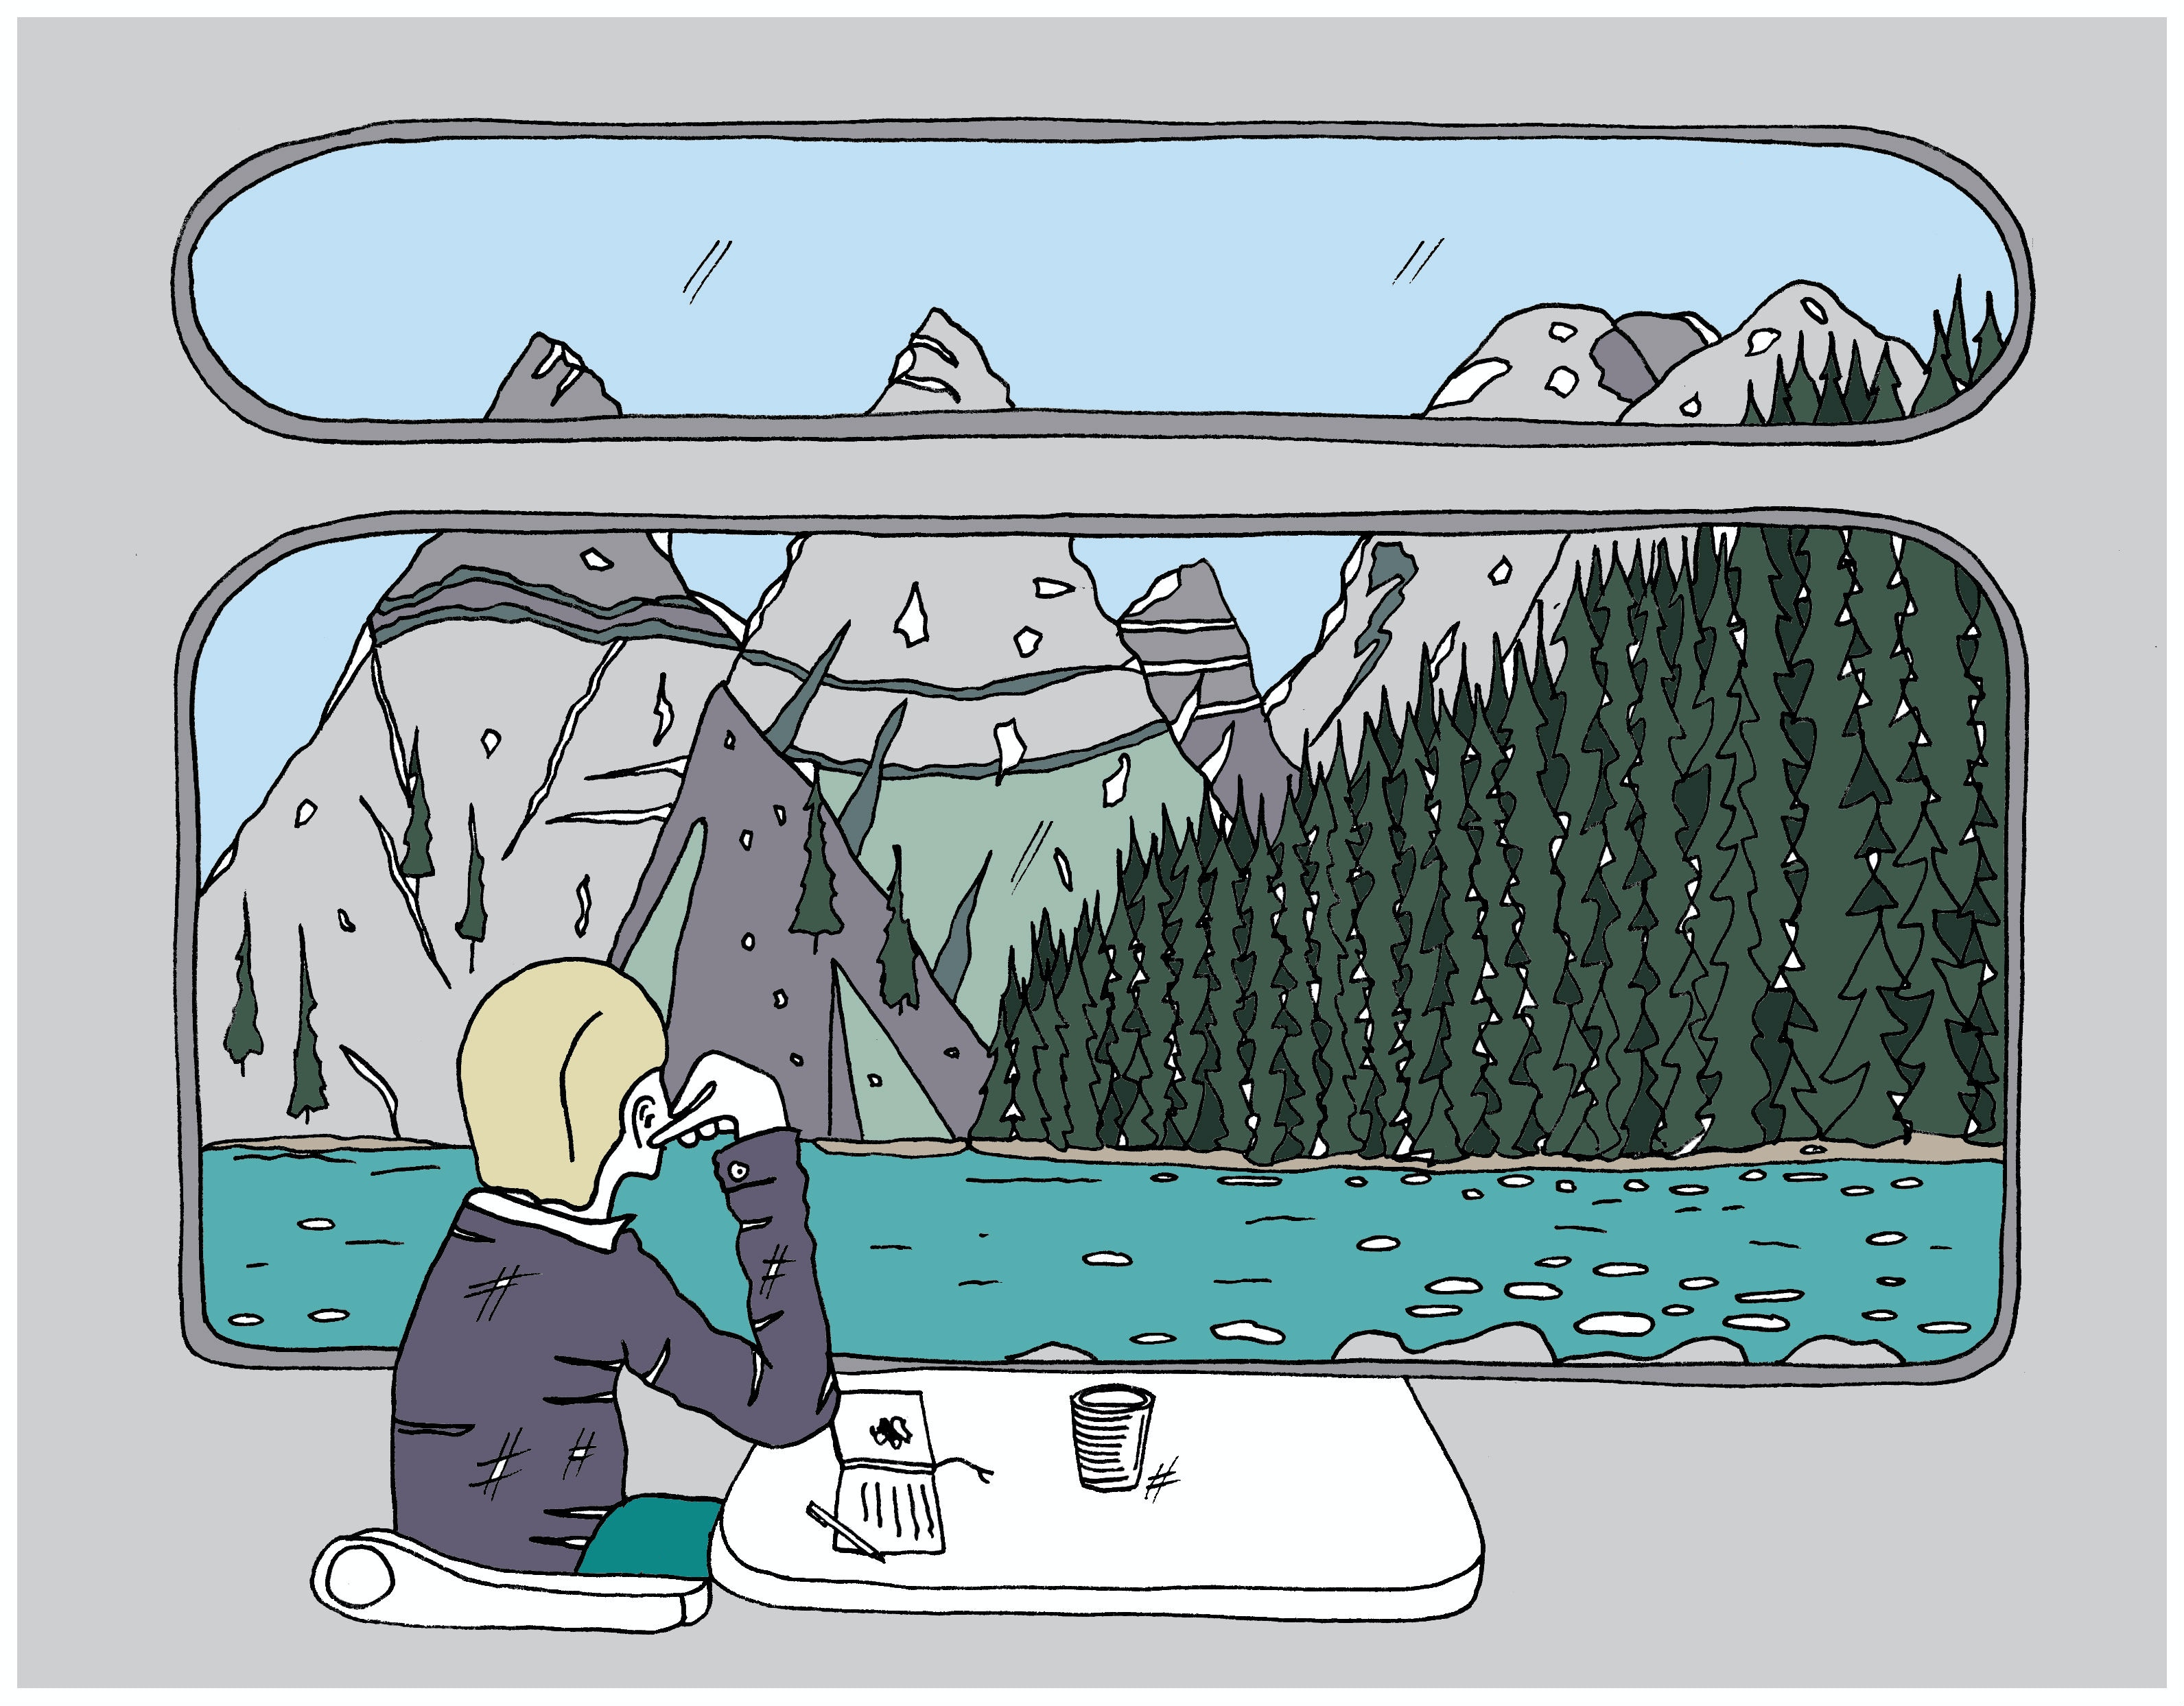 Illustration of a traveller looking out of a train window at a lake with mountains and forest in the background